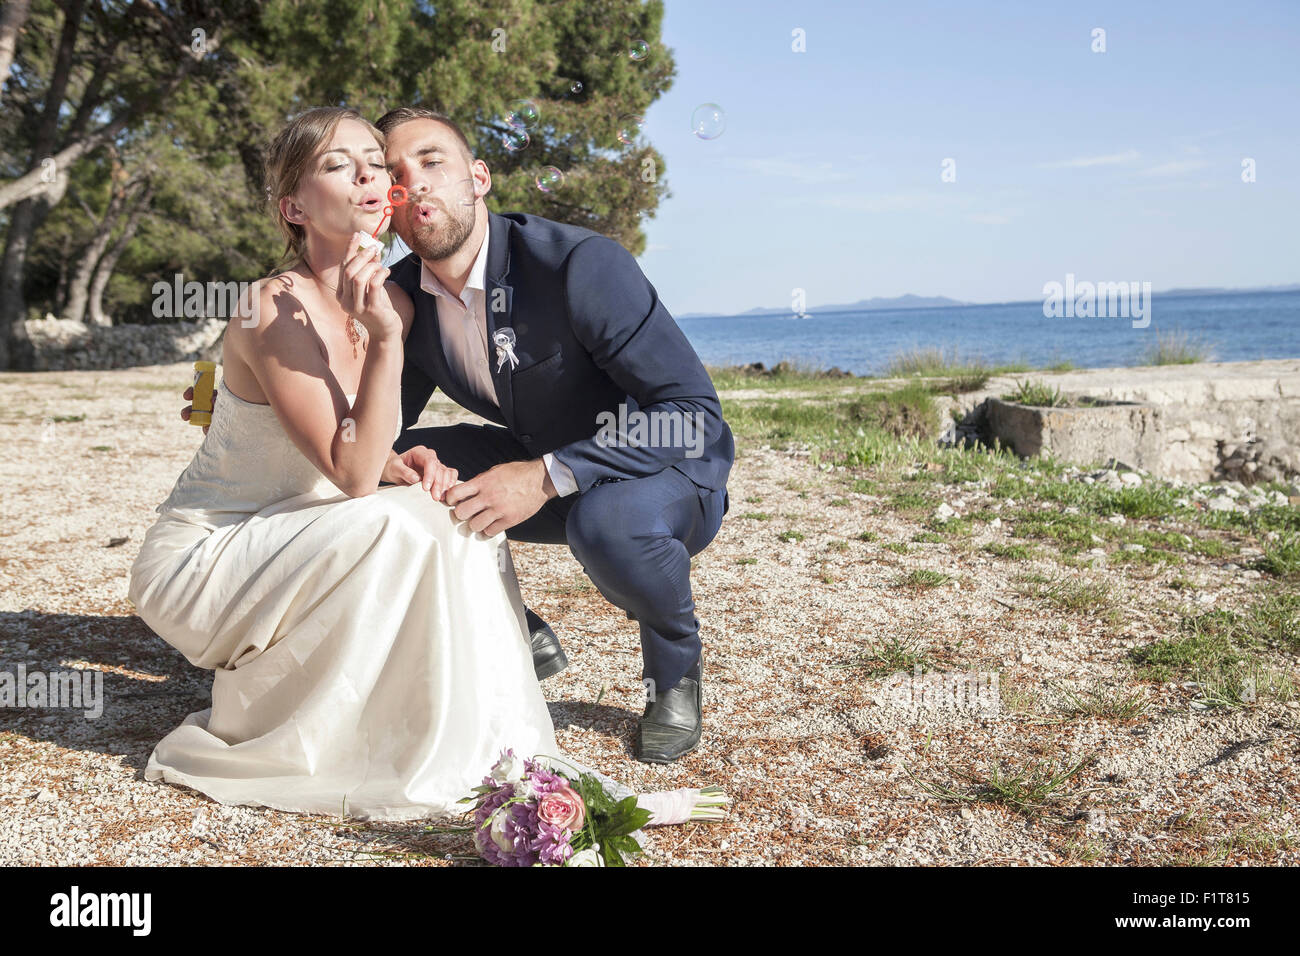 Bride and bridegroom on beach blowing soap bubbles - Stock Image